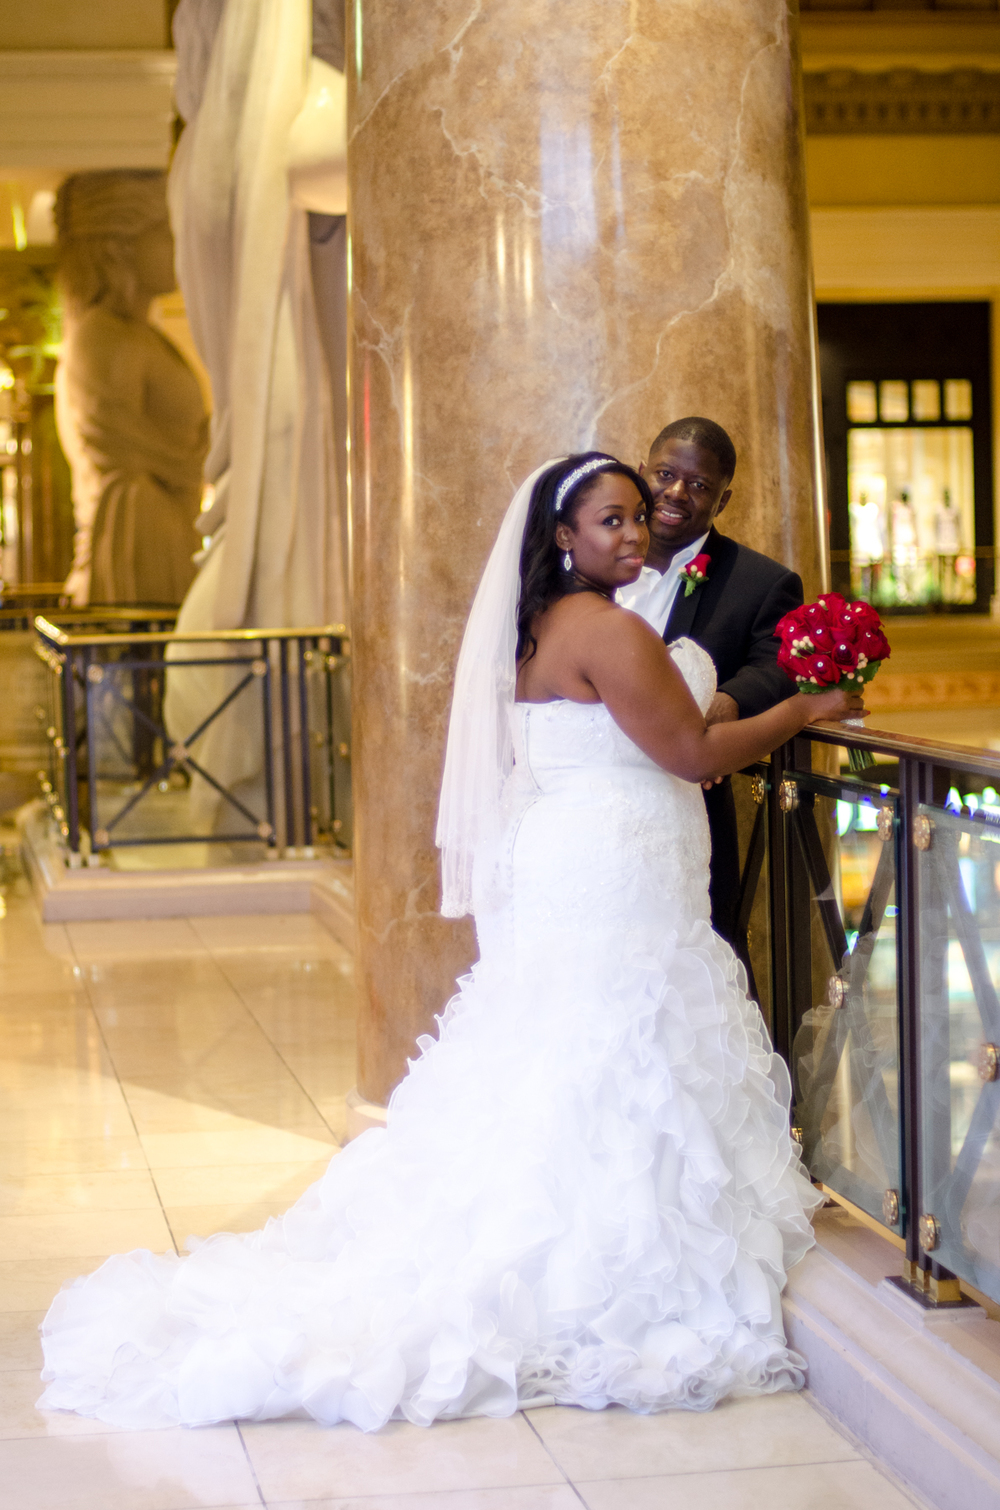 Las Vegas, Nevada Destination Wedding LeAnthony and Markheia